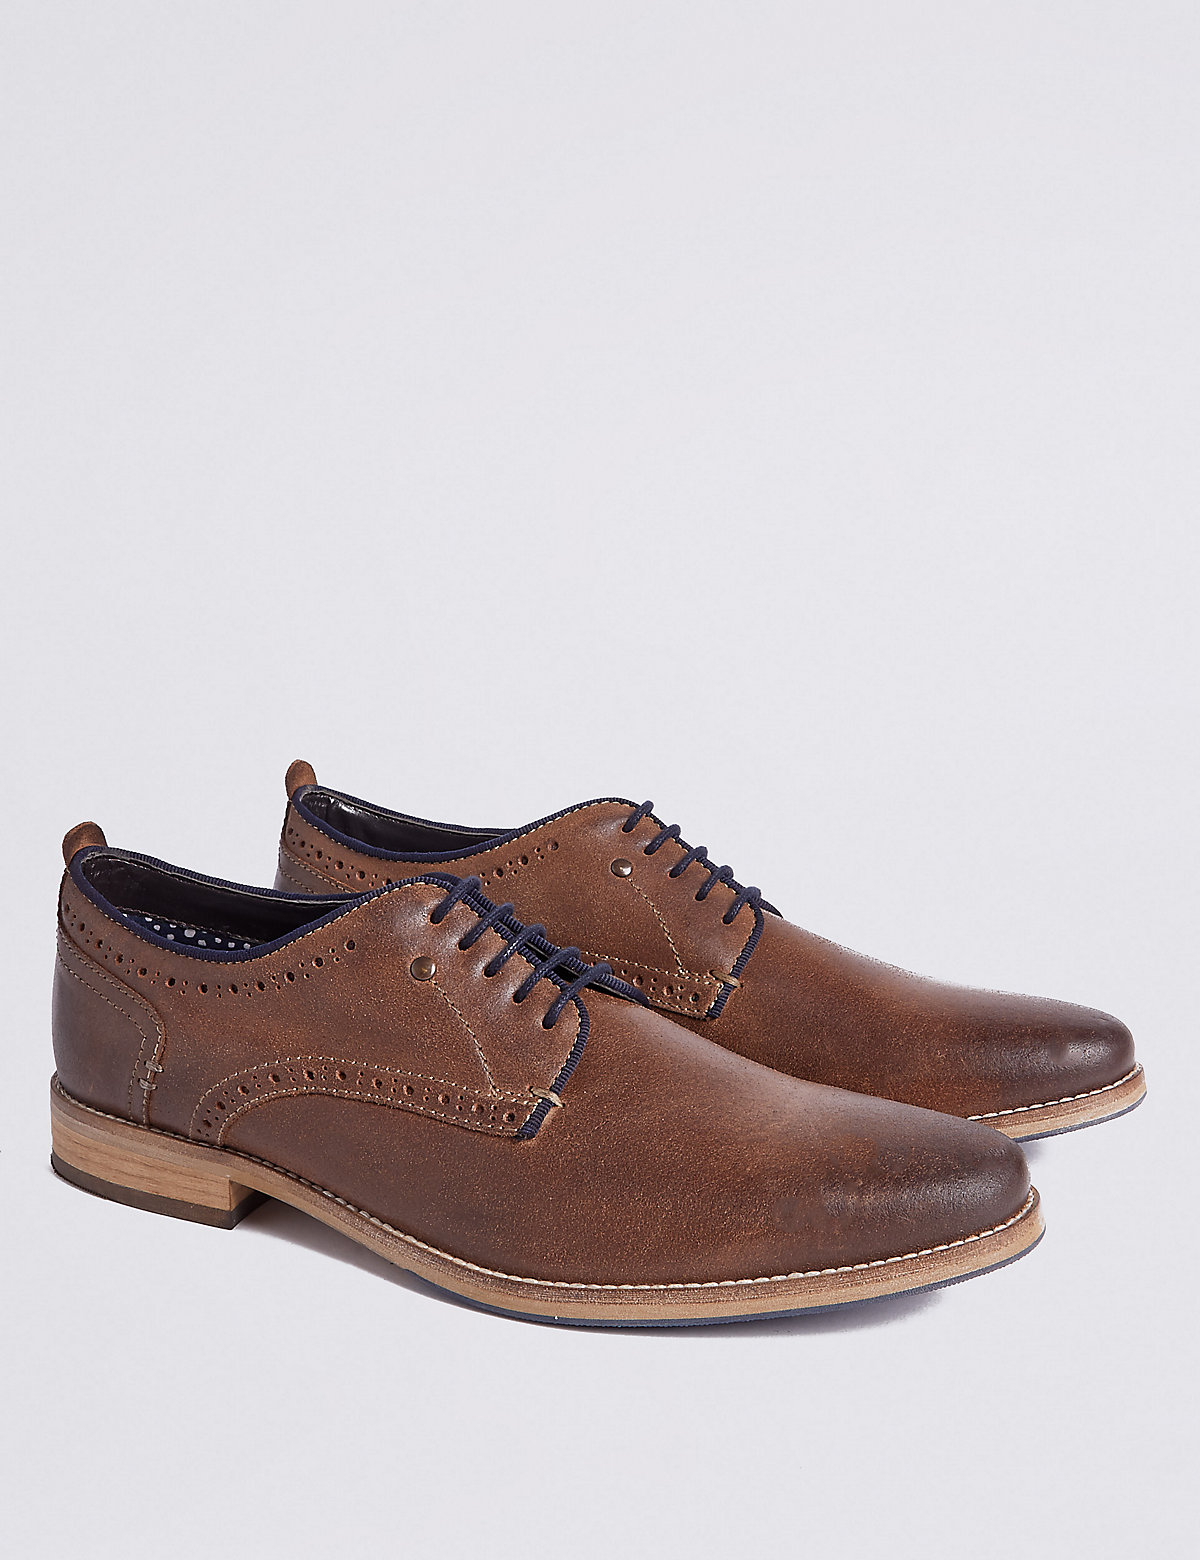 Marks & Spencer Dark Tan Leather Lace-up Derby Shoes